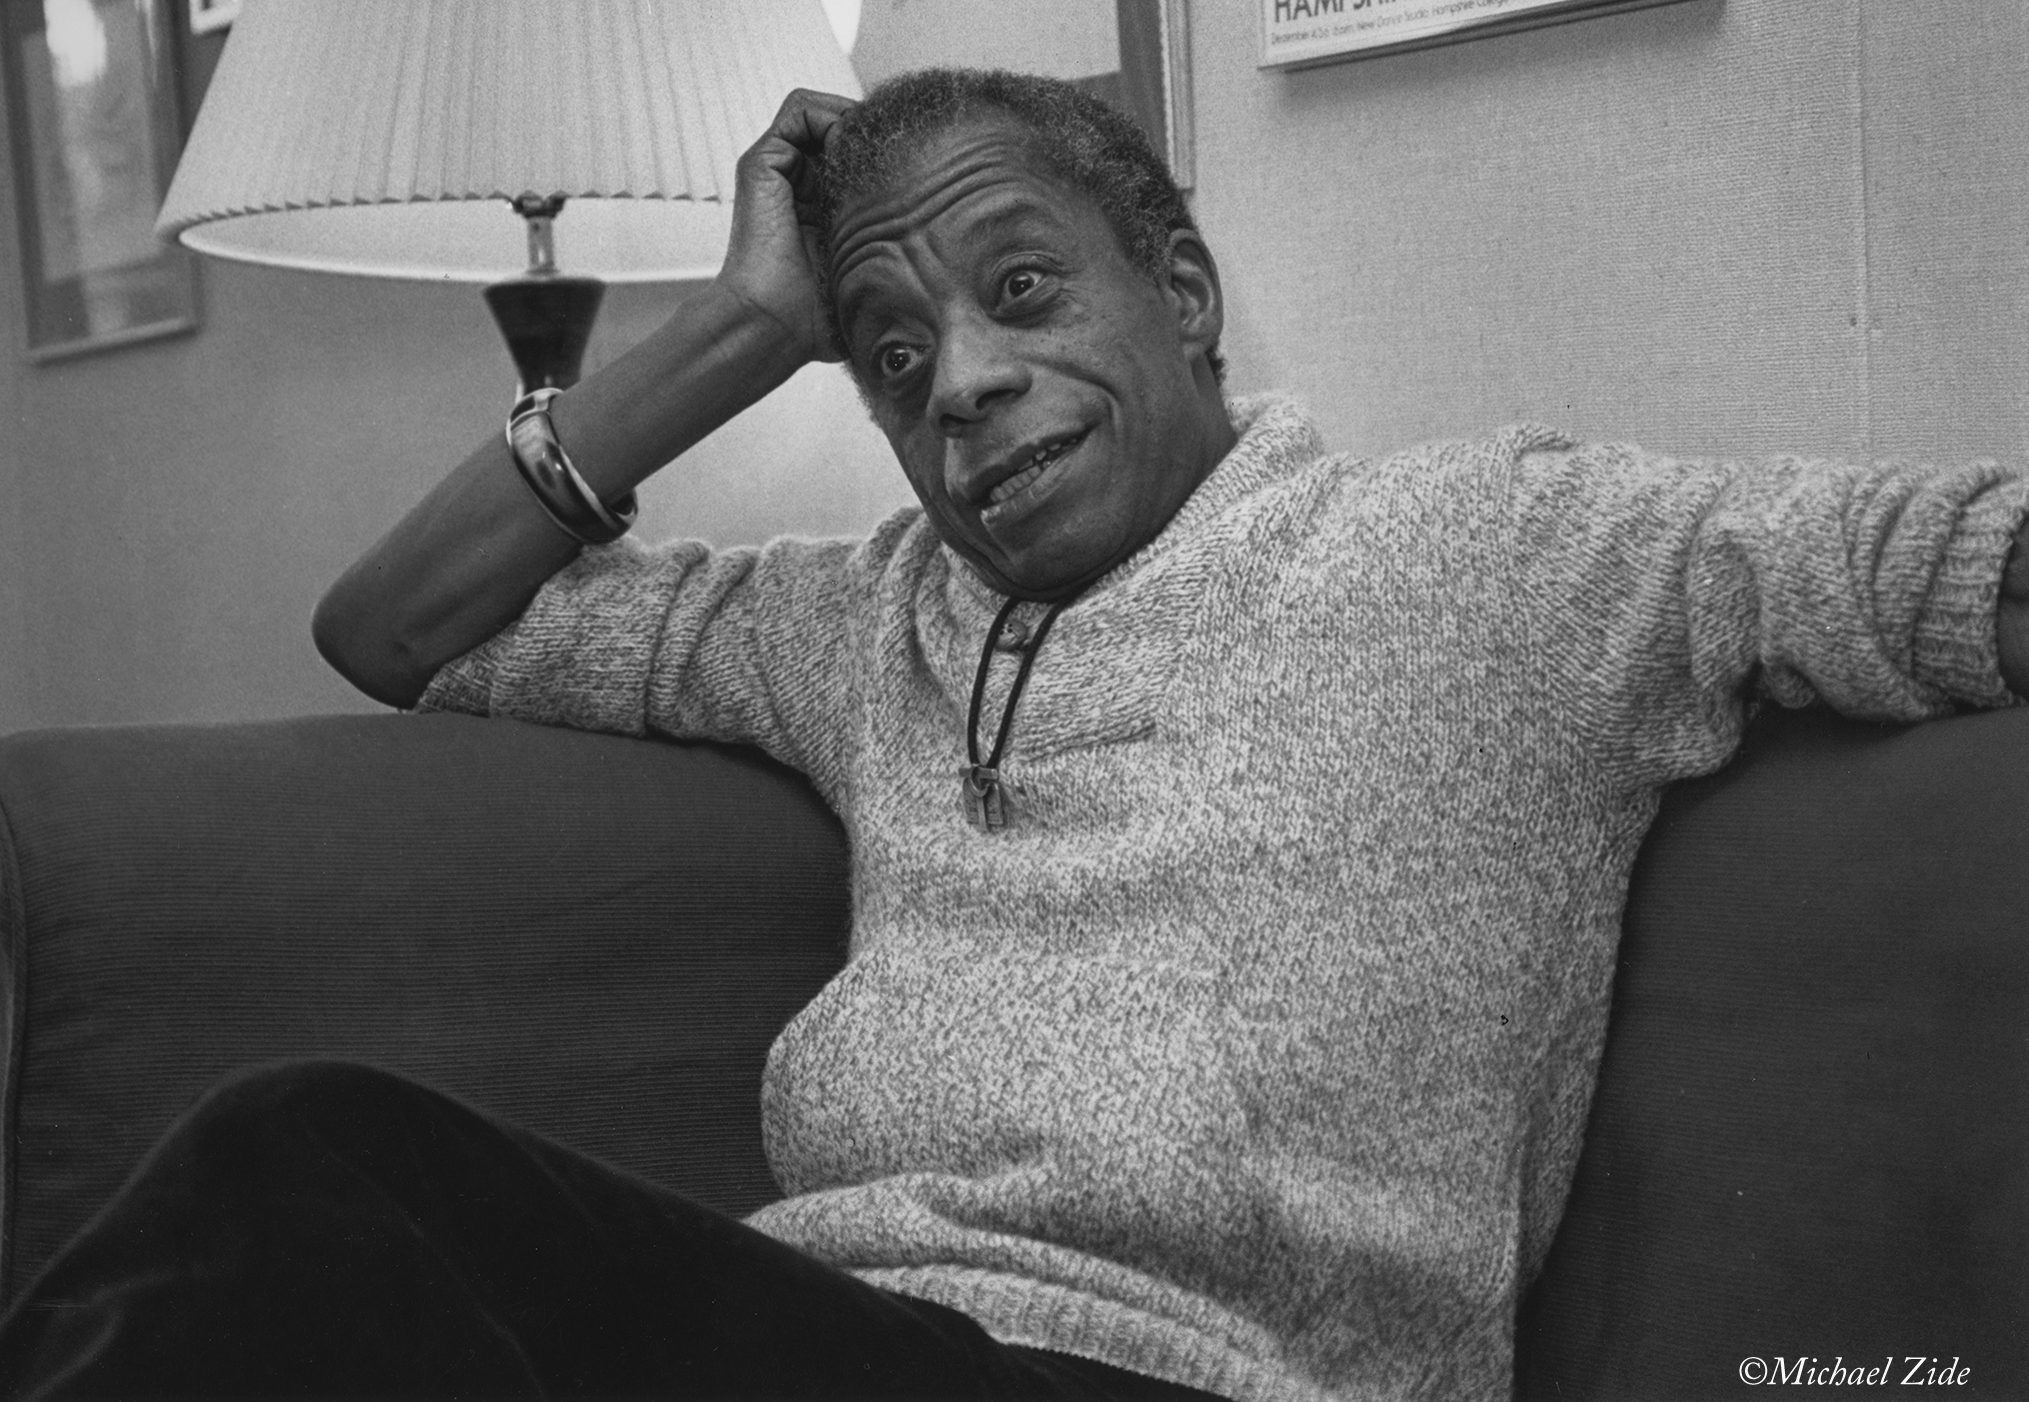 james baldwin essays This fine collection of essays represents an important contribution to the rediscovery of baldwin's stature as essayist, novelist, black prophetic political voice.